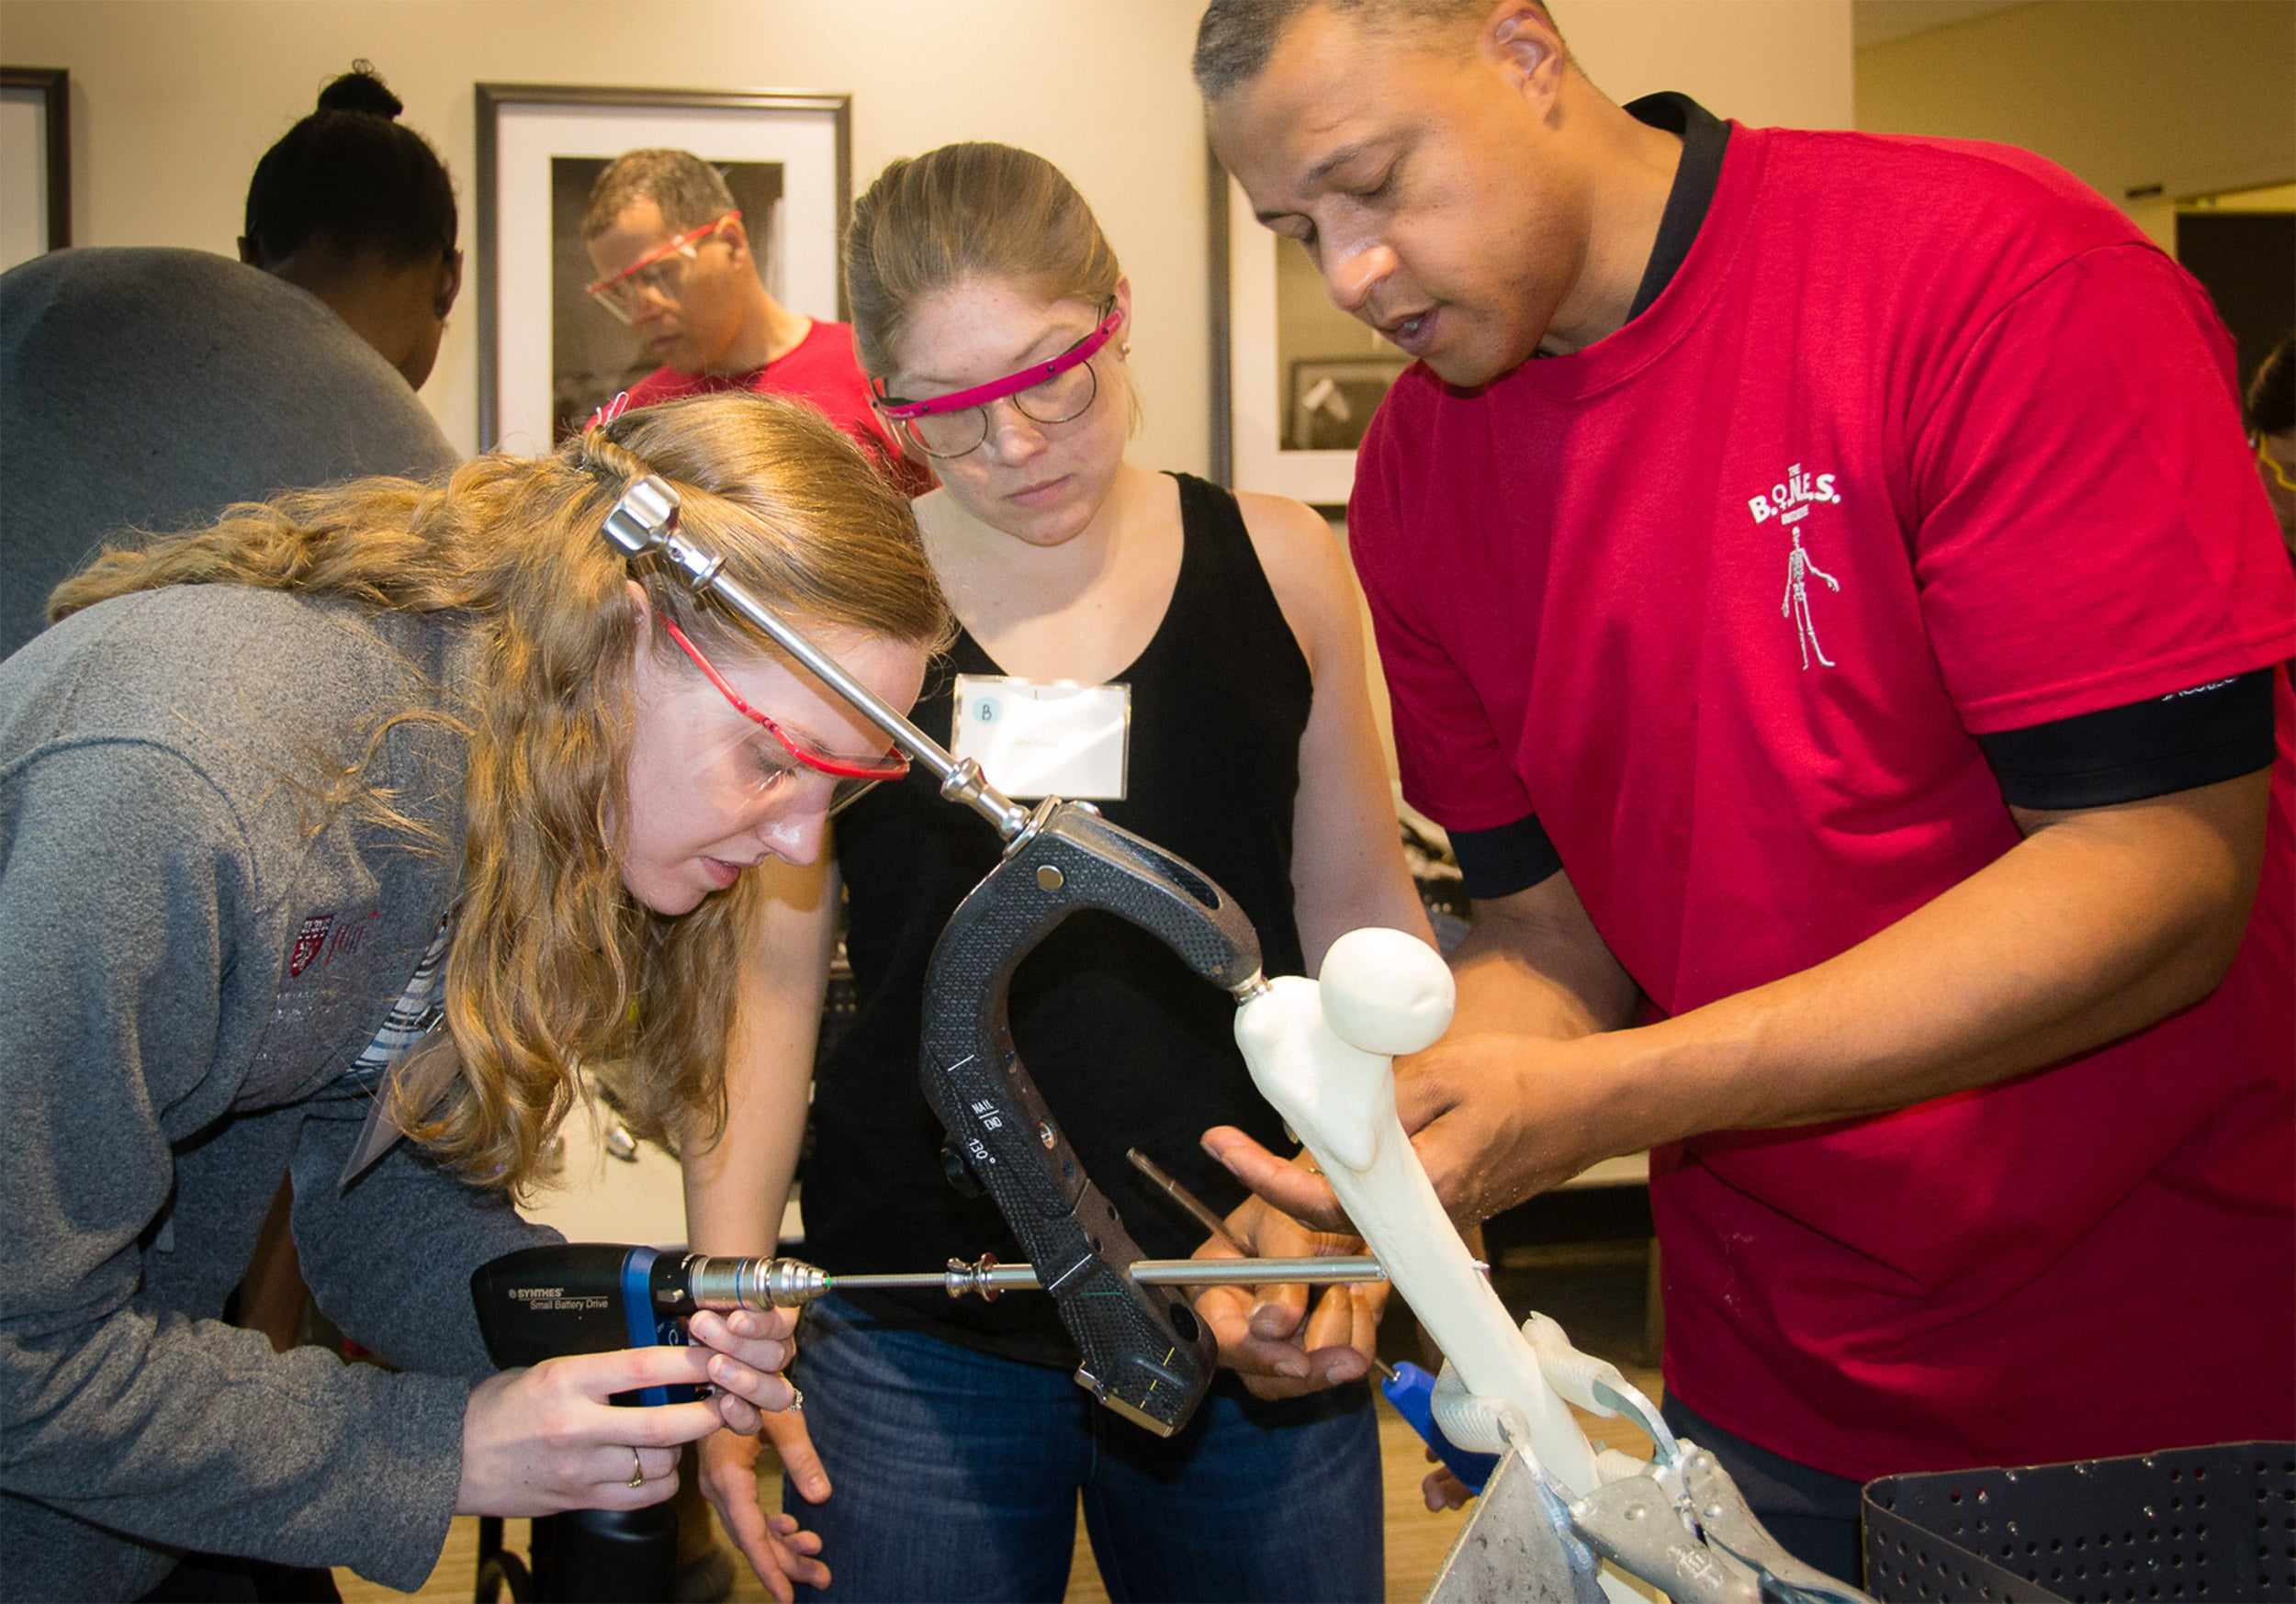 Blake Hauser (drilling) and Julia Gelissen practicing drilling and inserting intramedullary nail on sawbones model.